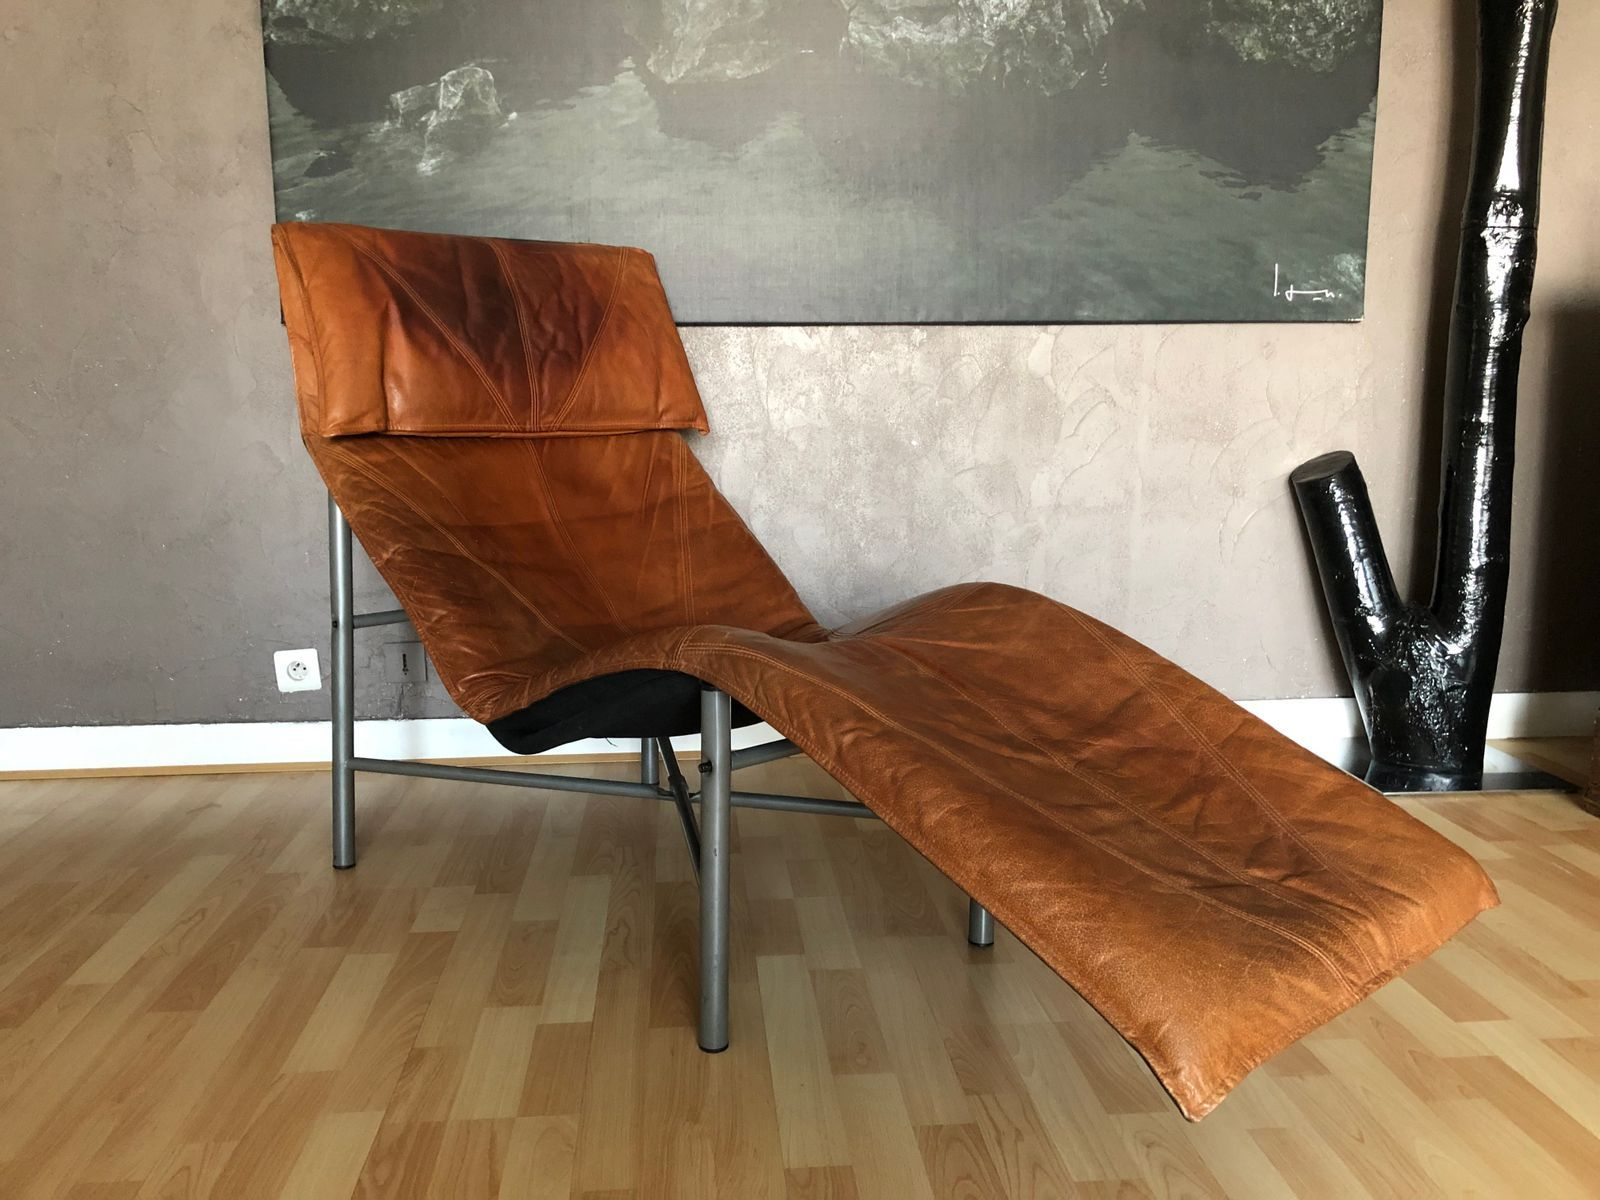 Vintage Cognac Leather Lounge Chair by Tord Bjorklund for